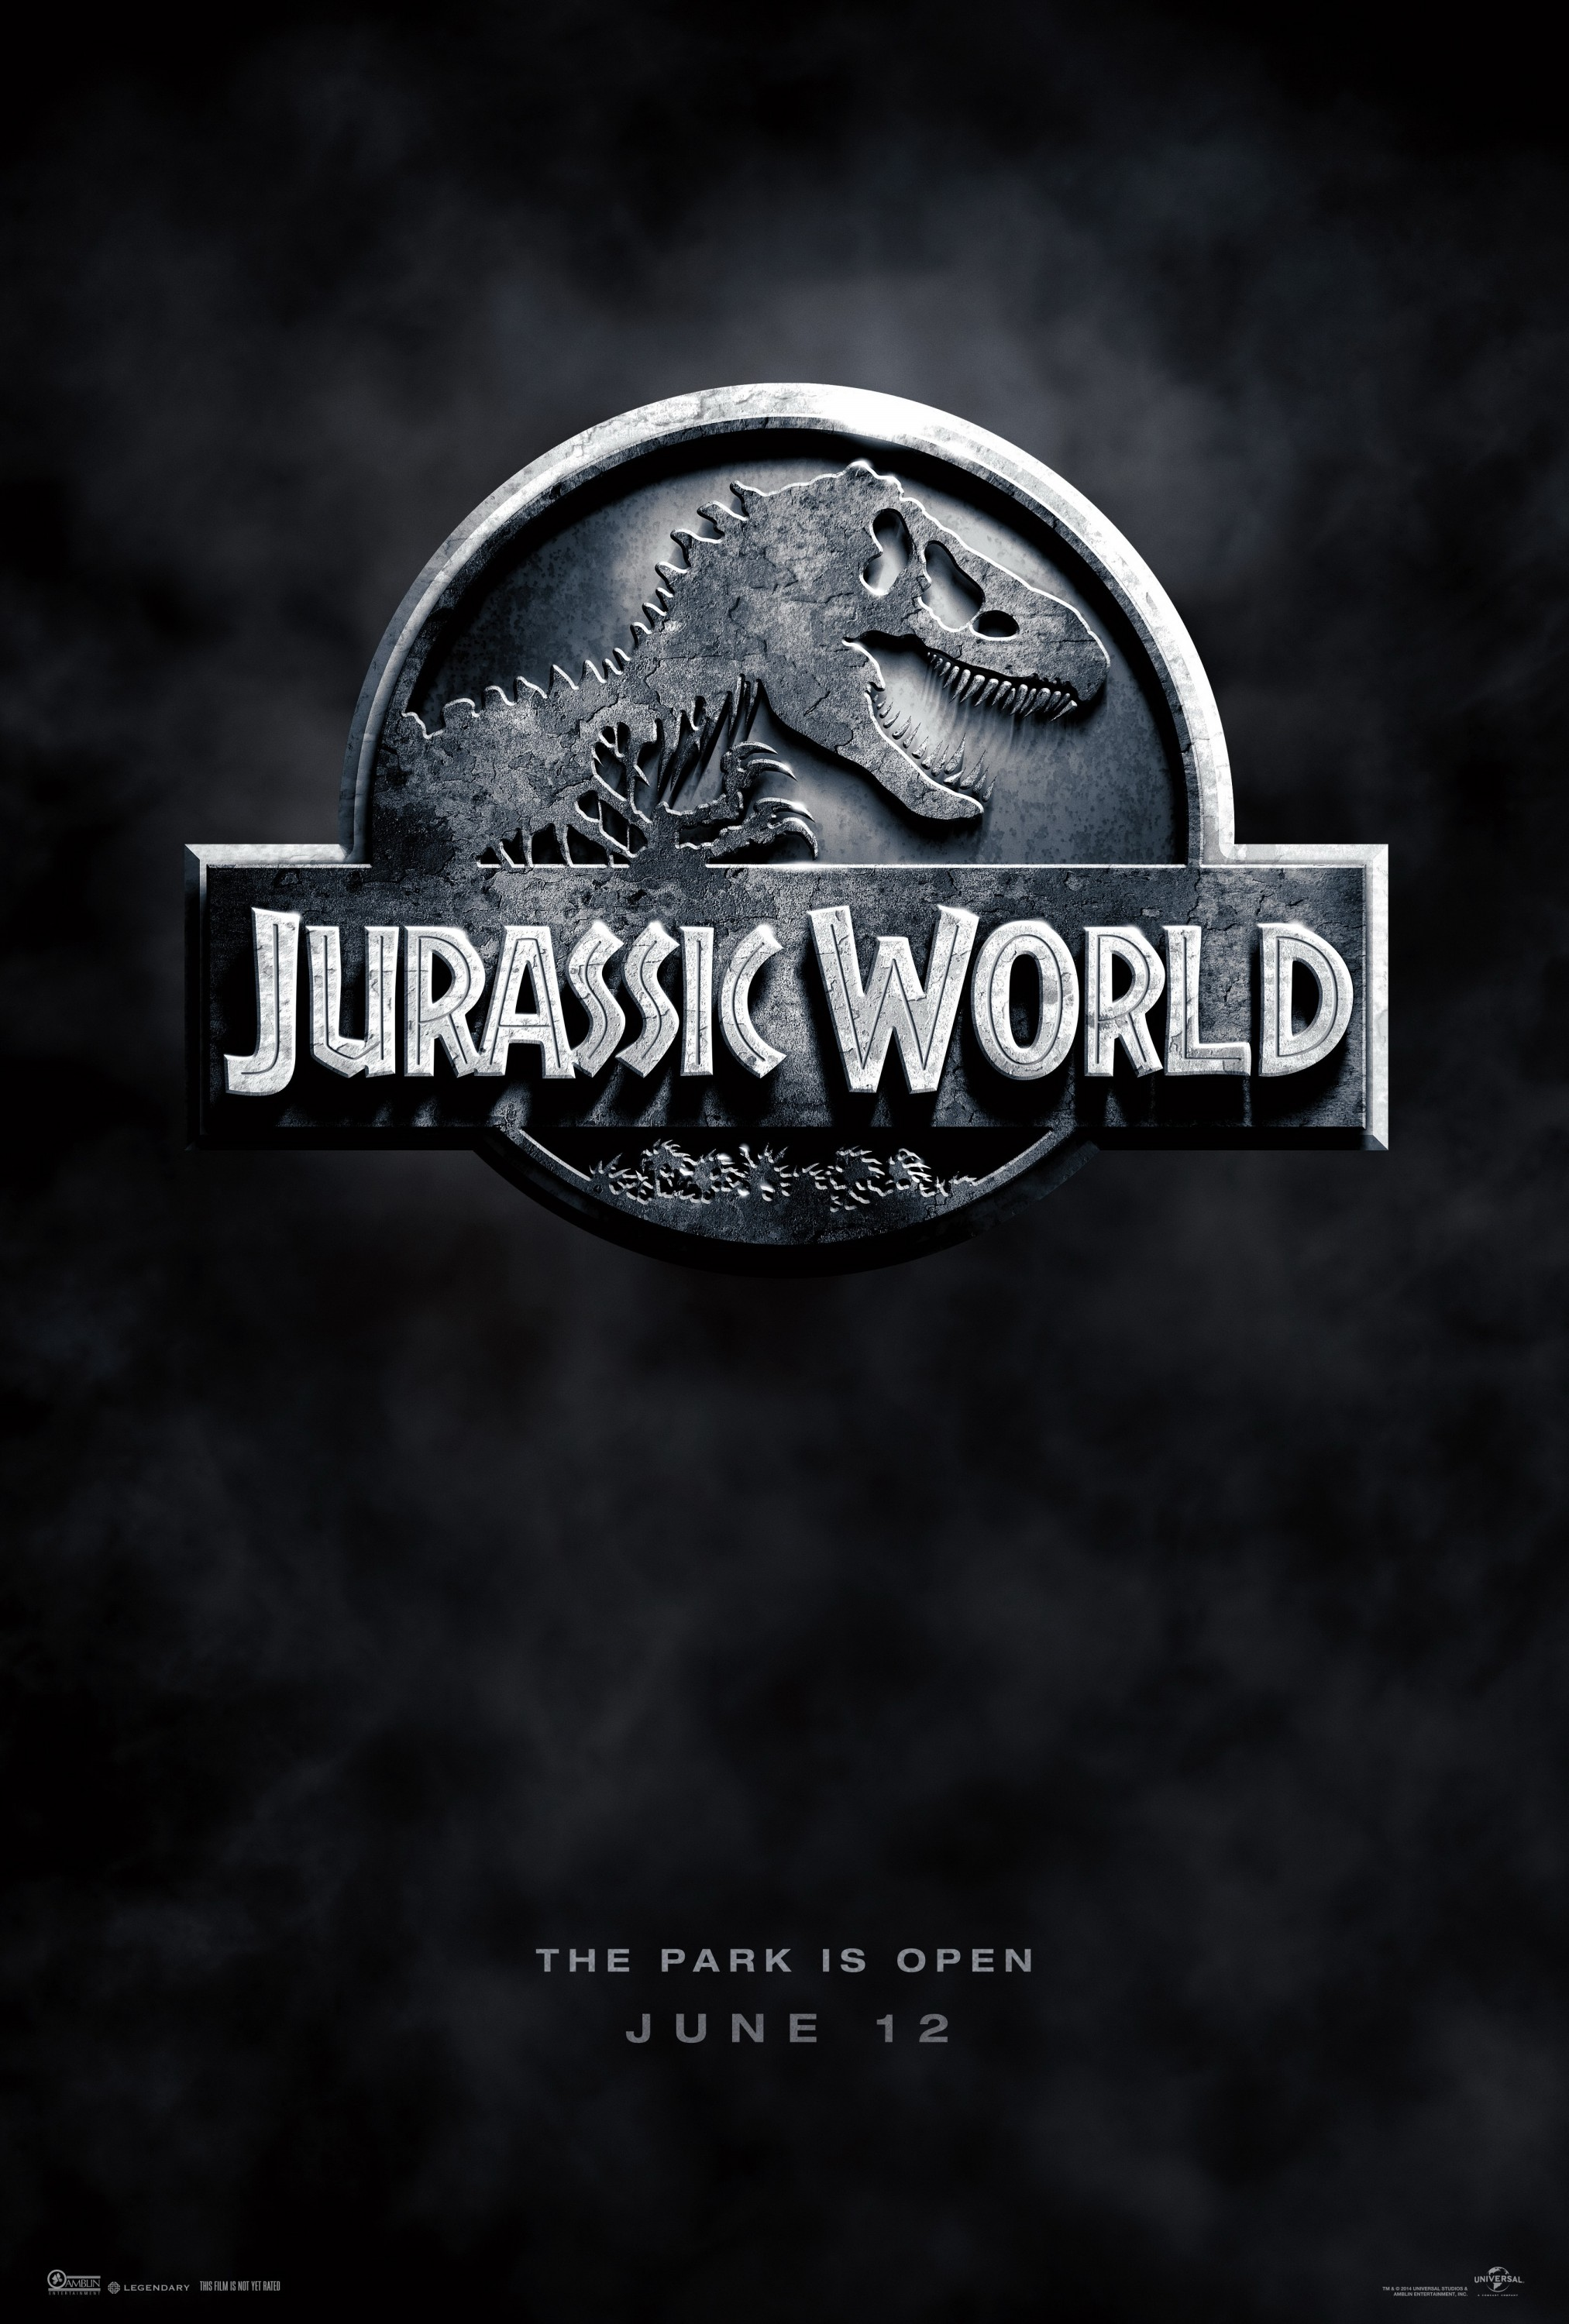 Jurassic World-Official Poster Banner PROMO XXLG-16OUTUBRO2014-00